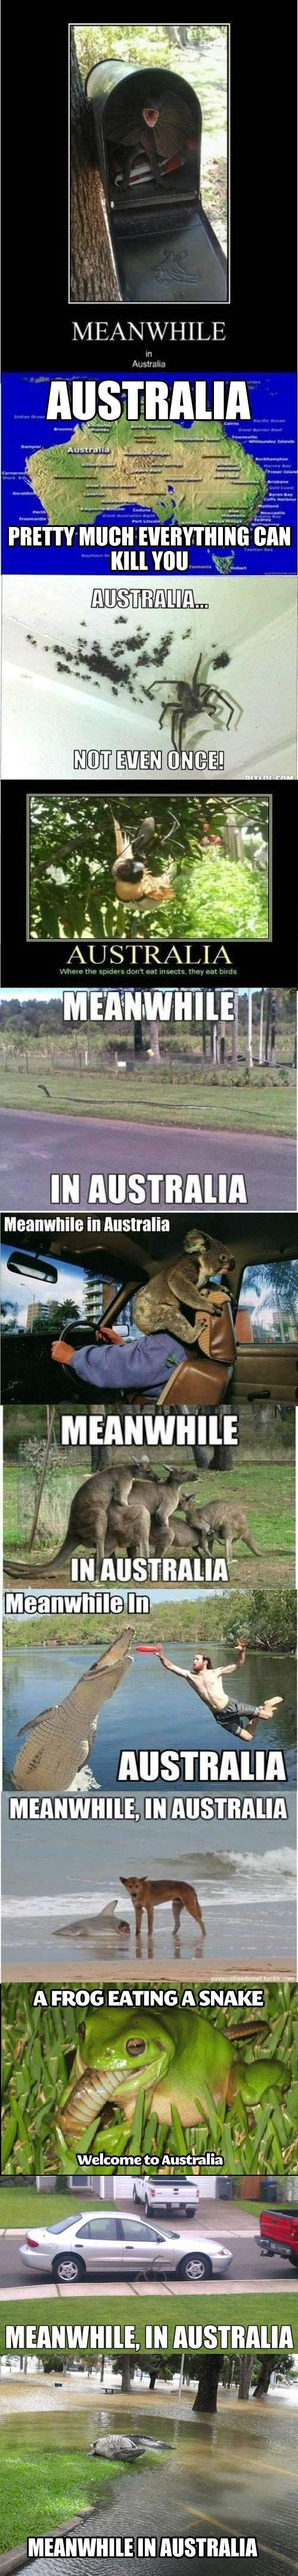 Meanwhile In Australia Compilation